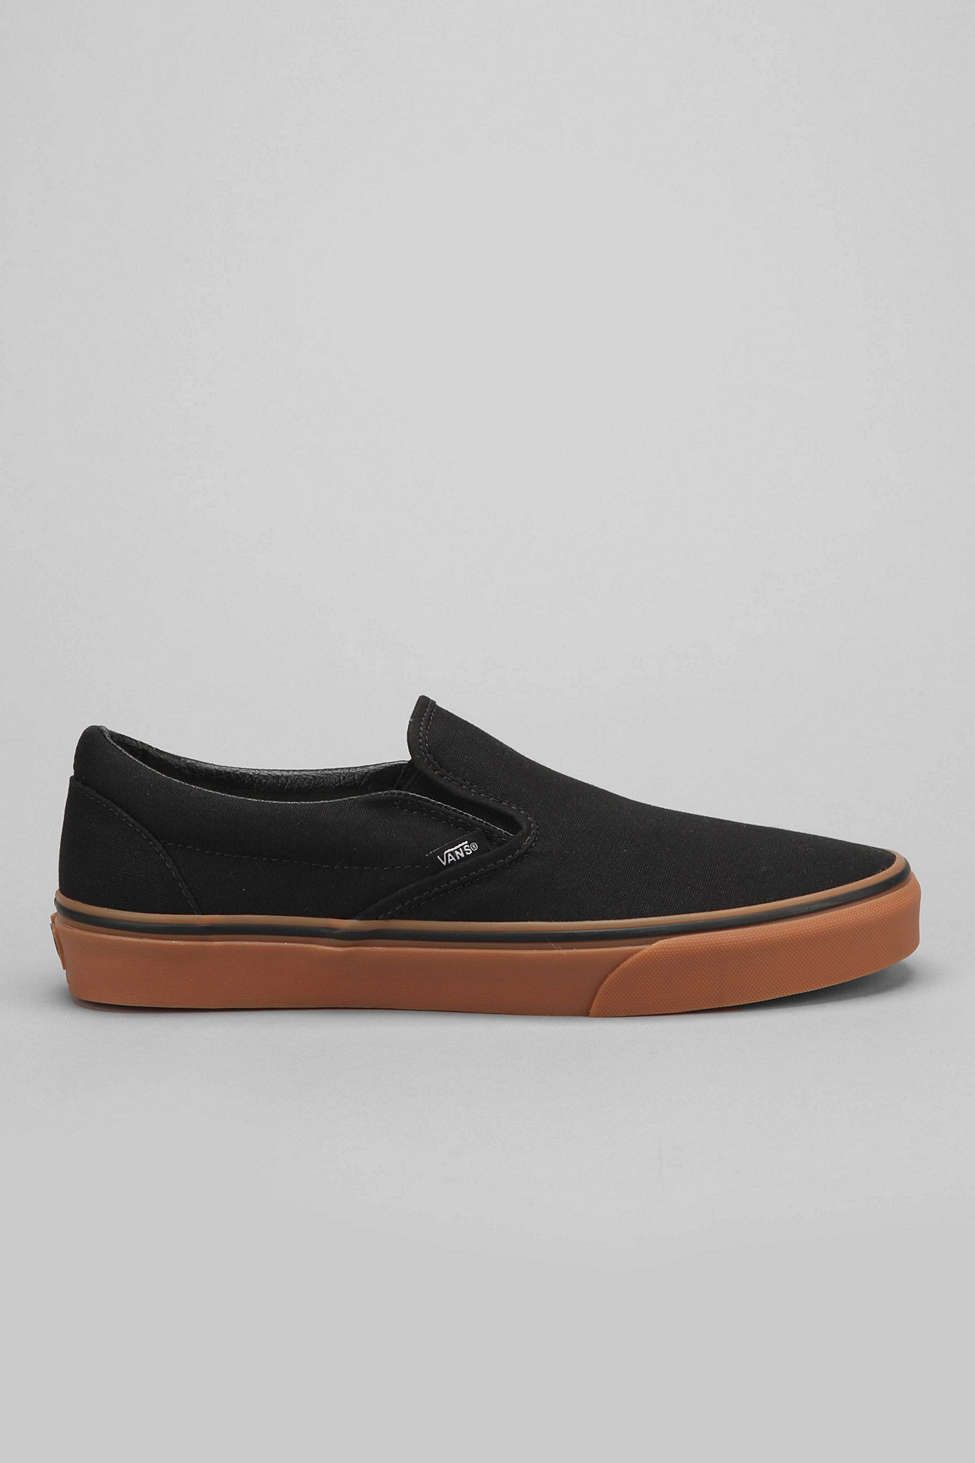 e80a9b5f81473f Vans Classic Gum-Sole Slip-On Men s Sneaker